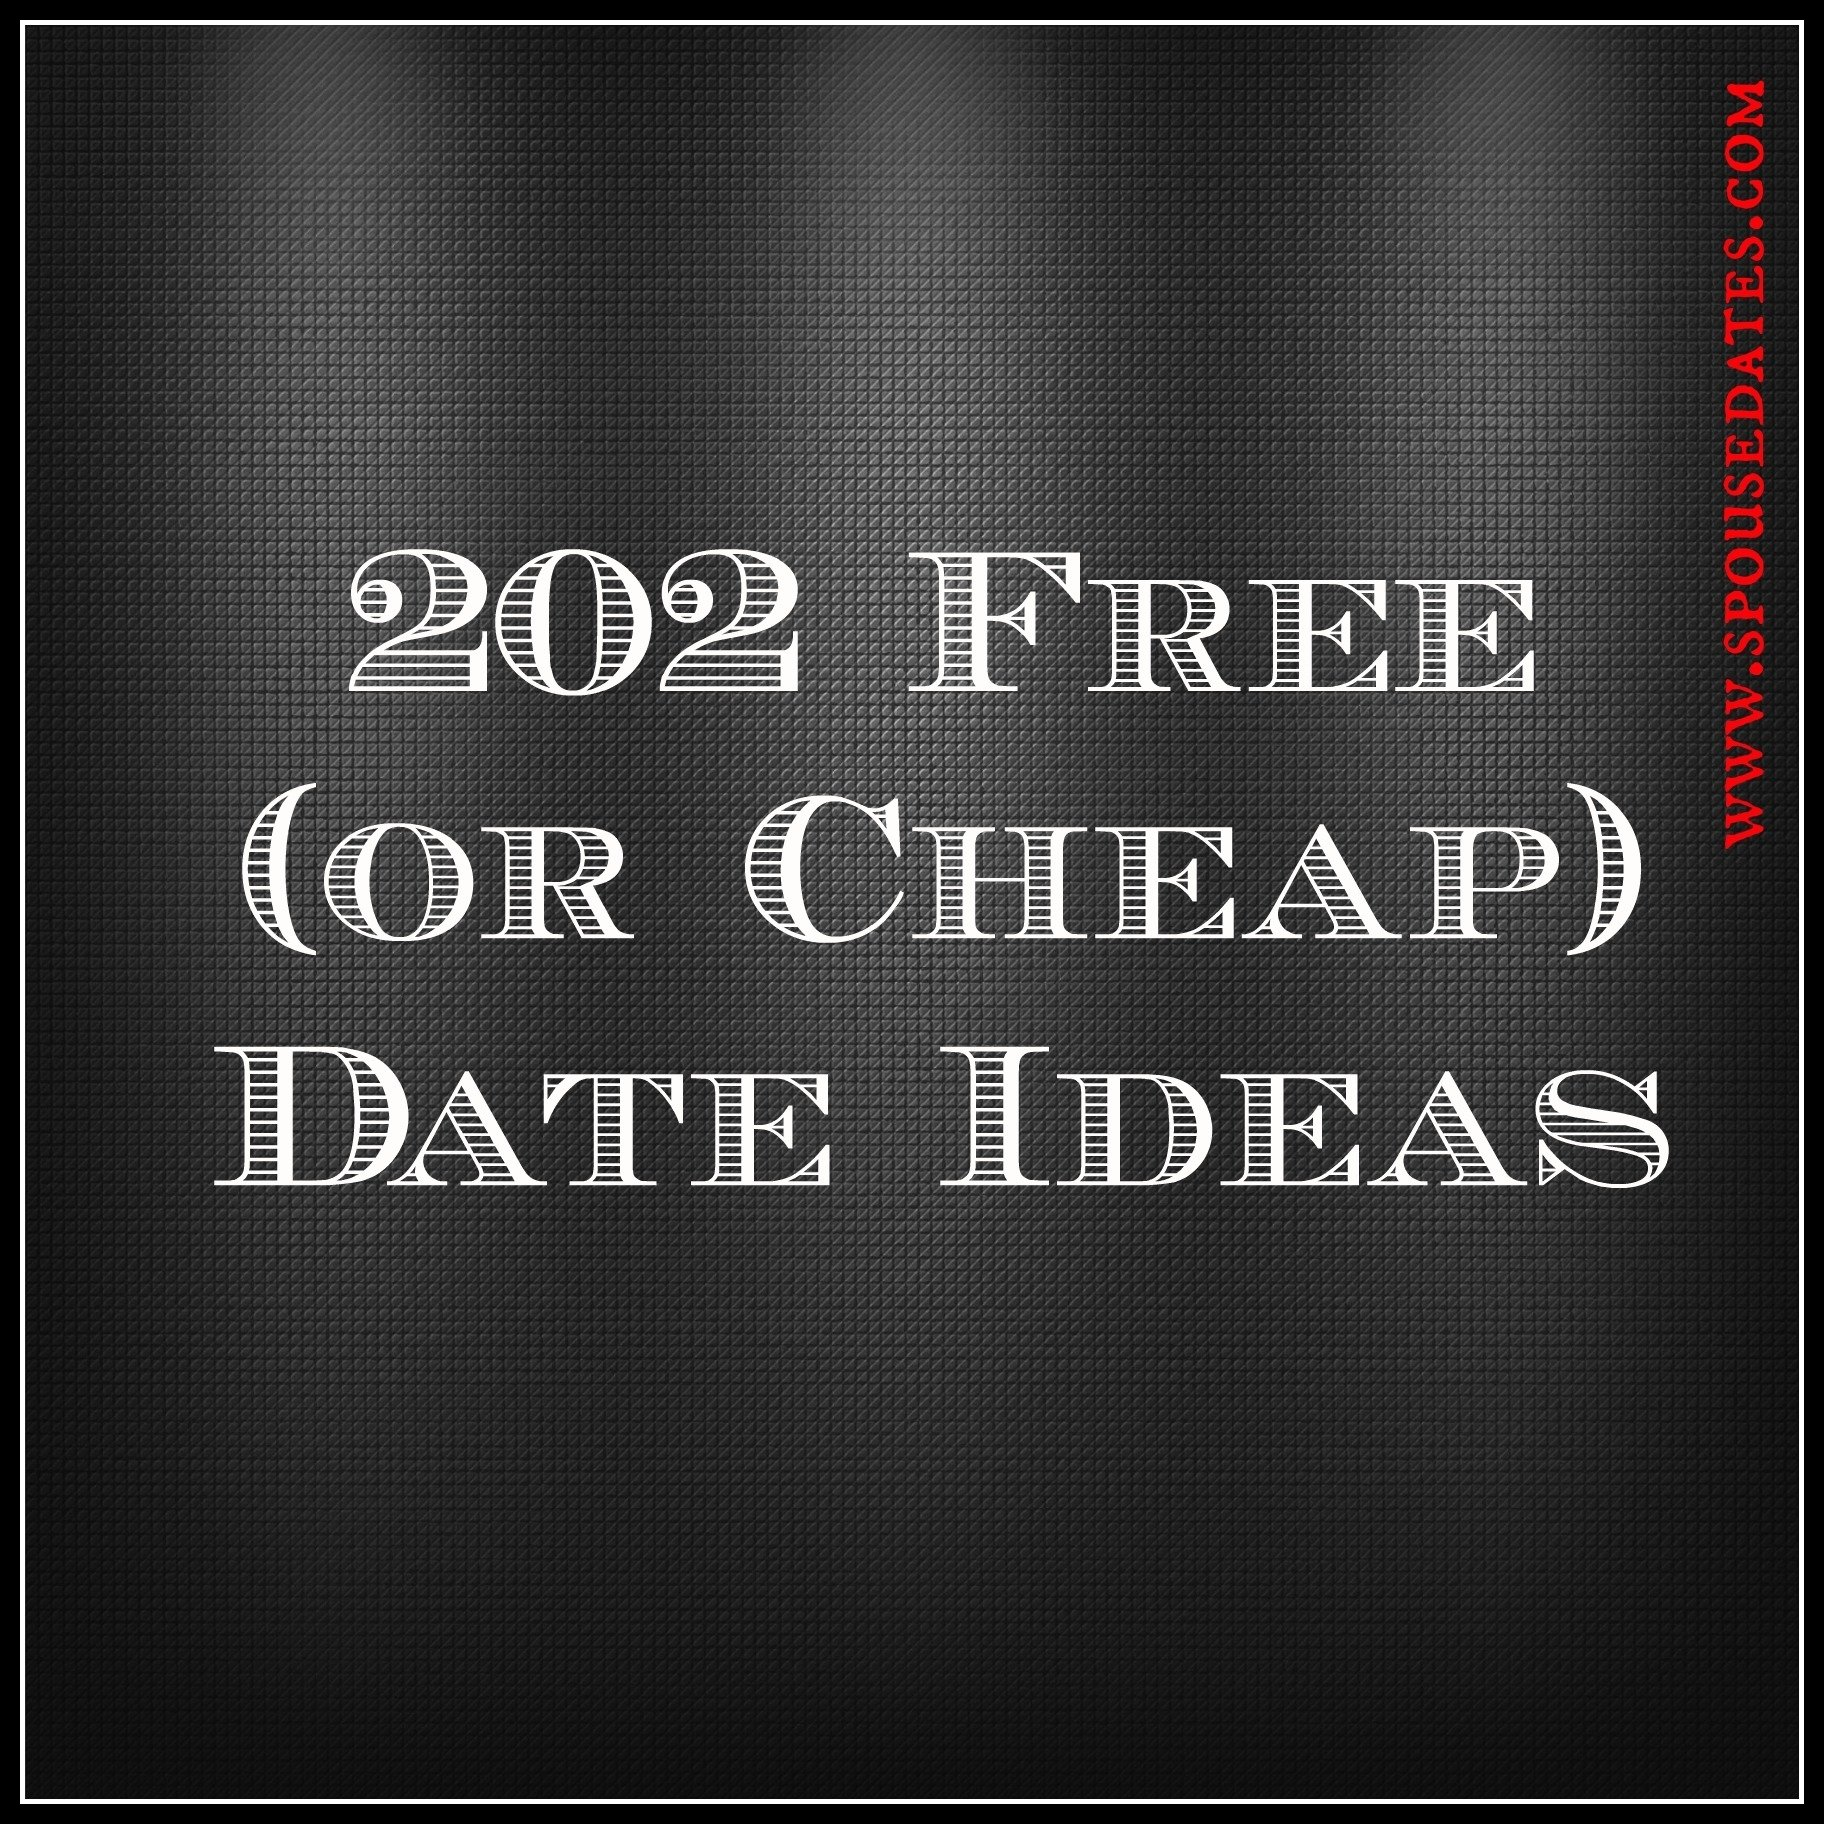 10 Most Recommended Free Date Ideas For Couples 202 free or cheap date ideas 2 2021